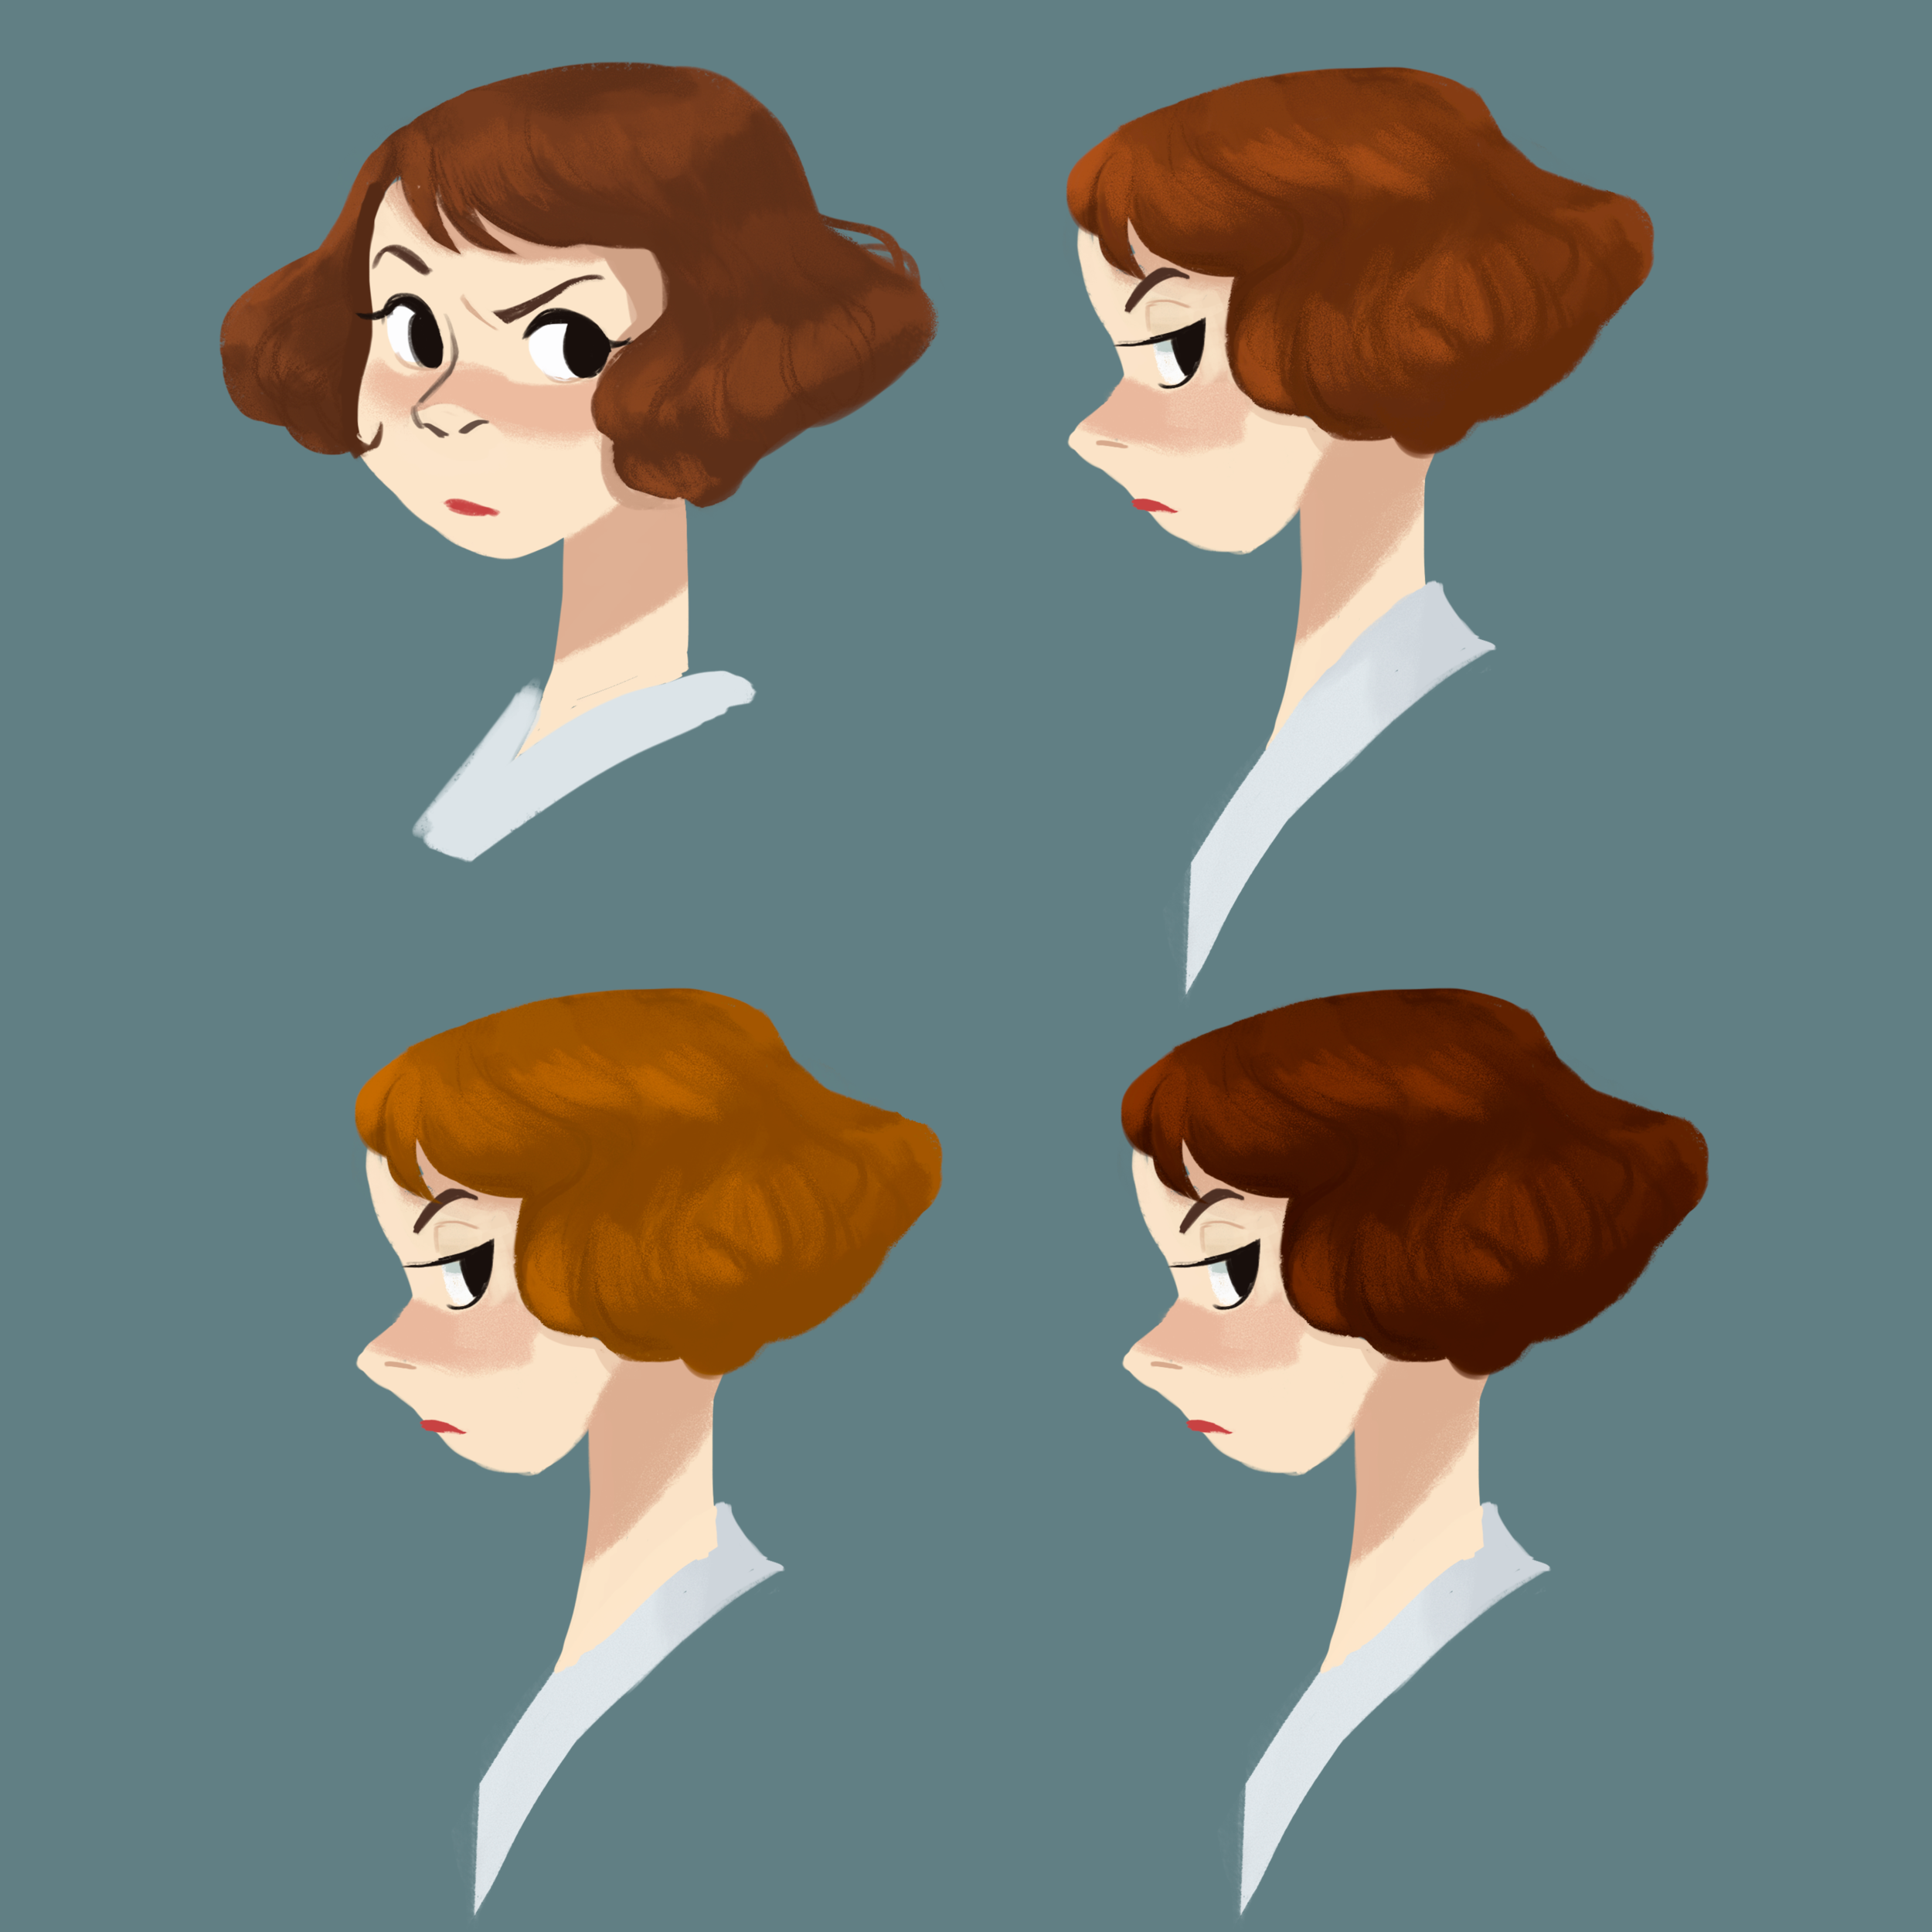 Figuring out Marie's hair color.